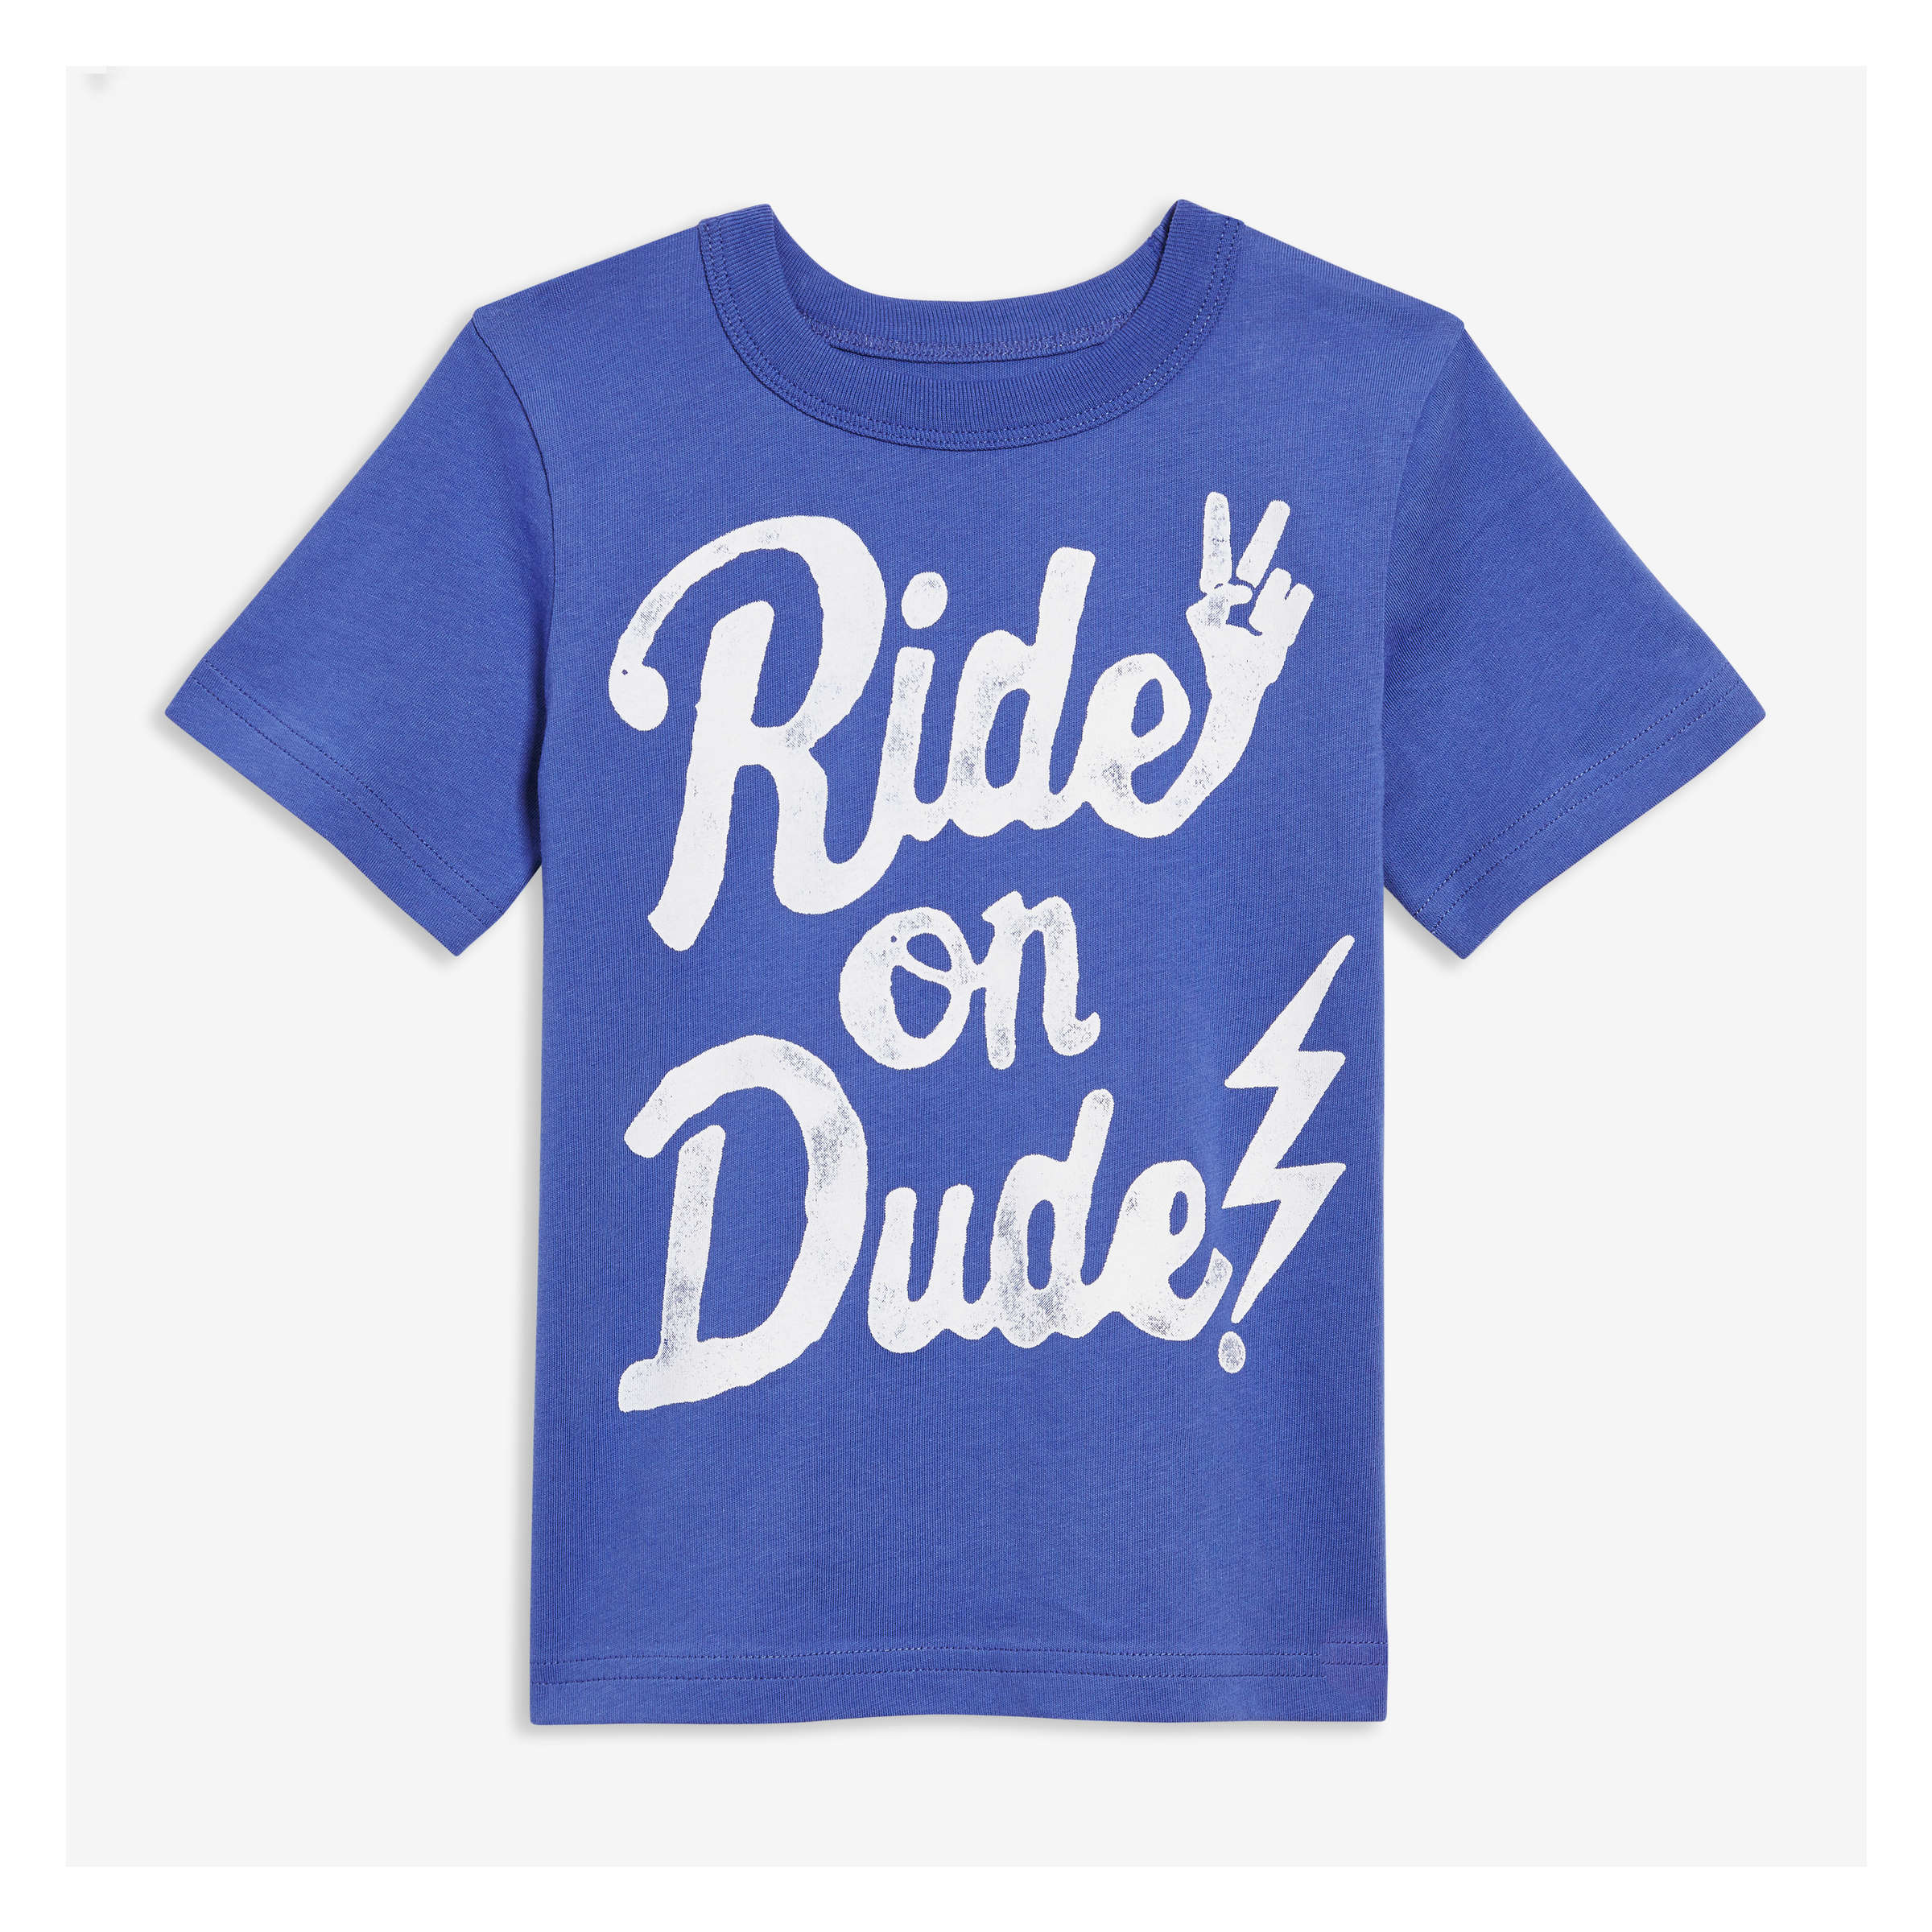 b03c0c453 Toddler Boys' Graphic Tee in Royal Blue from Joe Fresh